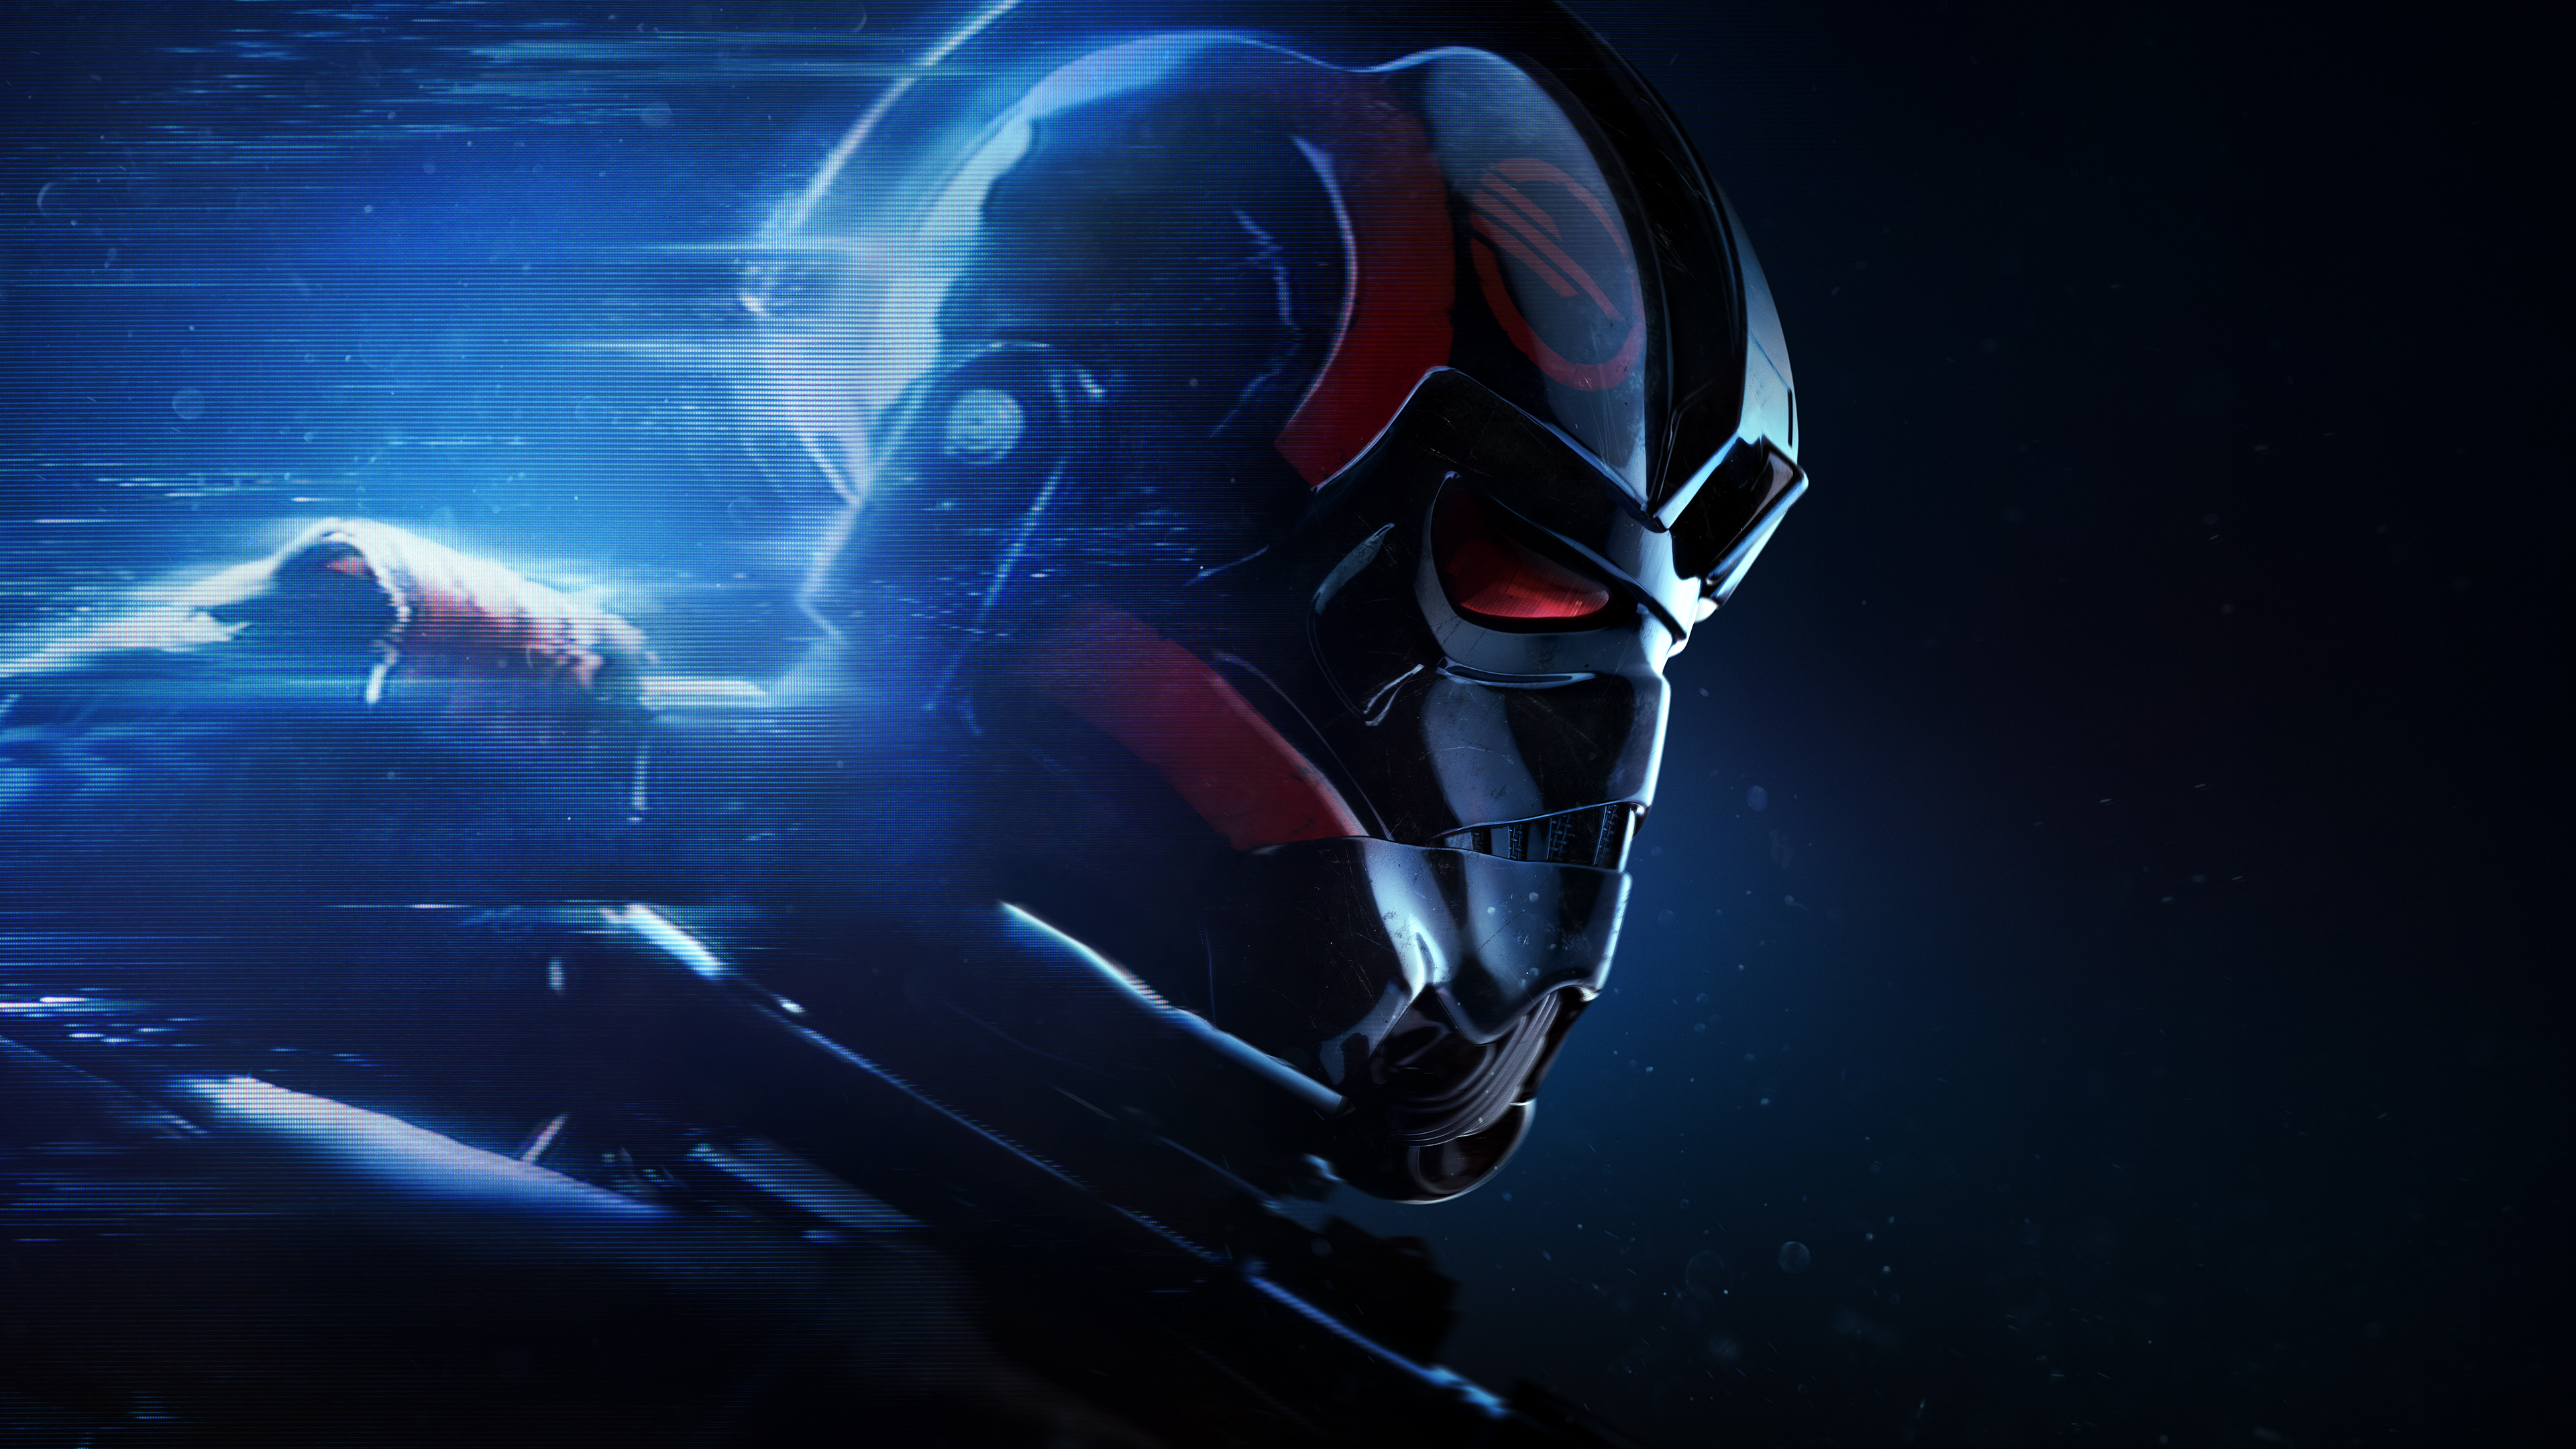 7 Star Wars Battlefront II HD Wallpapers